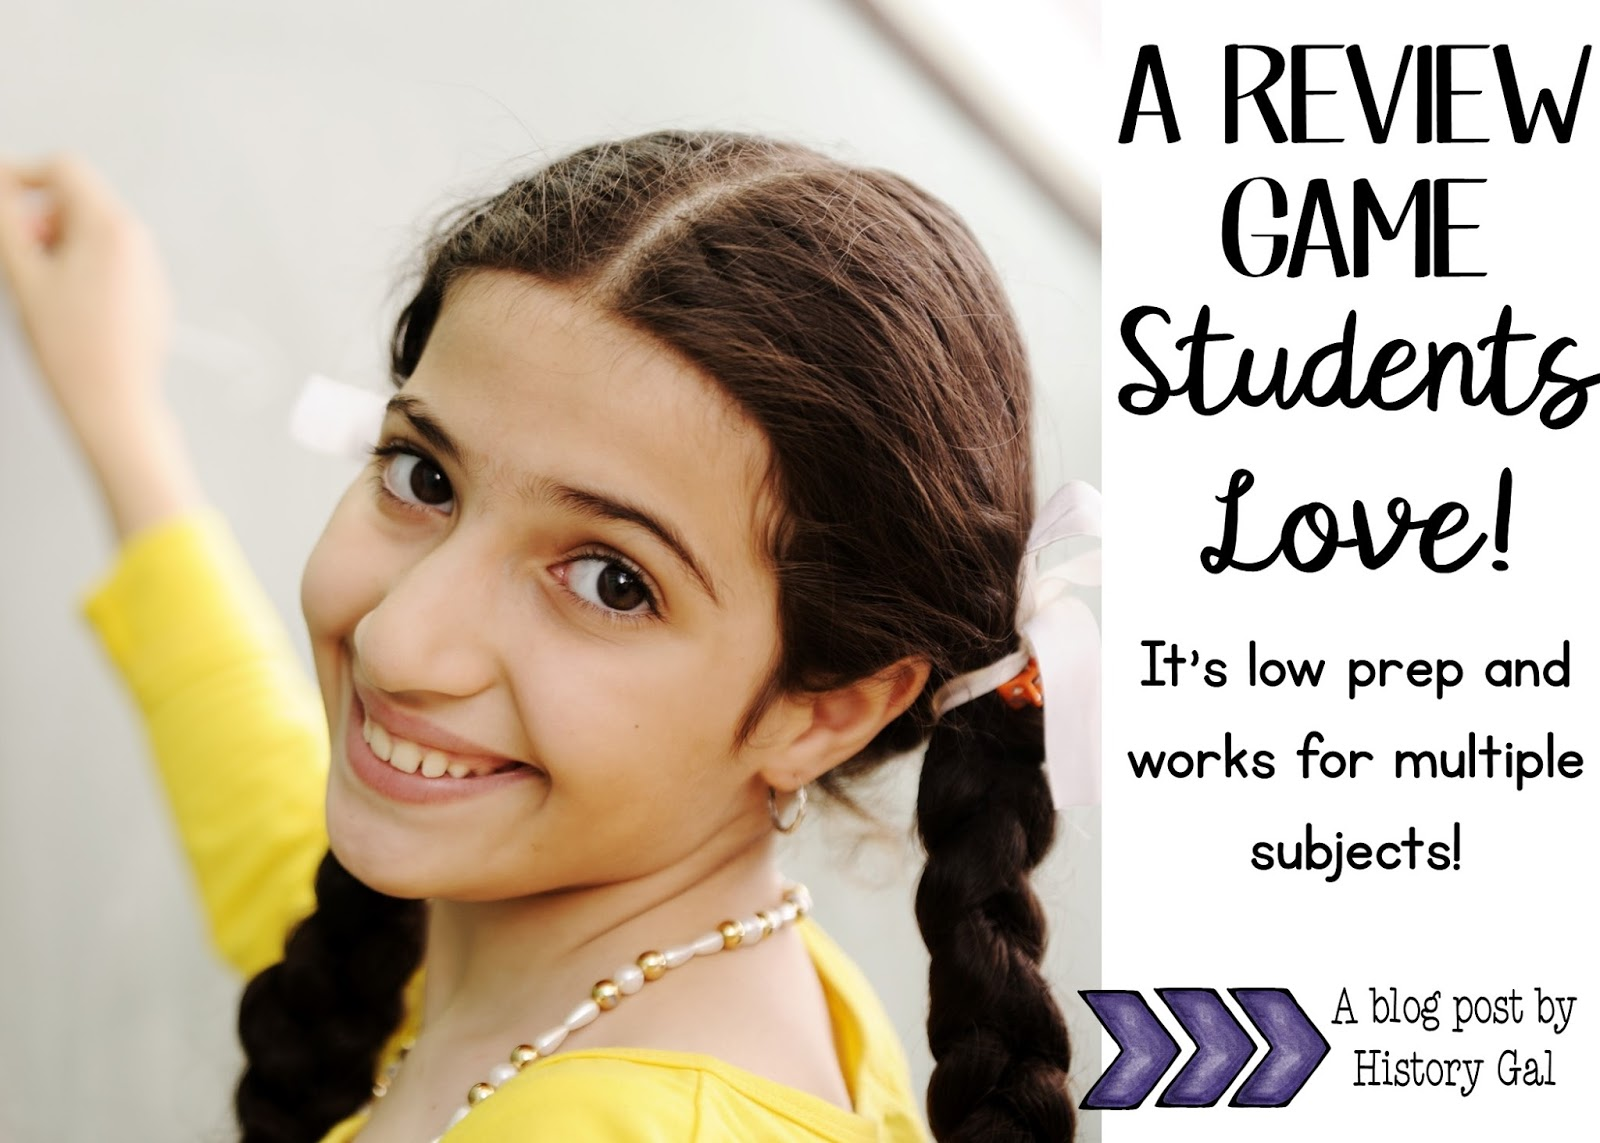 An easy, low prep review game students love by History Gal